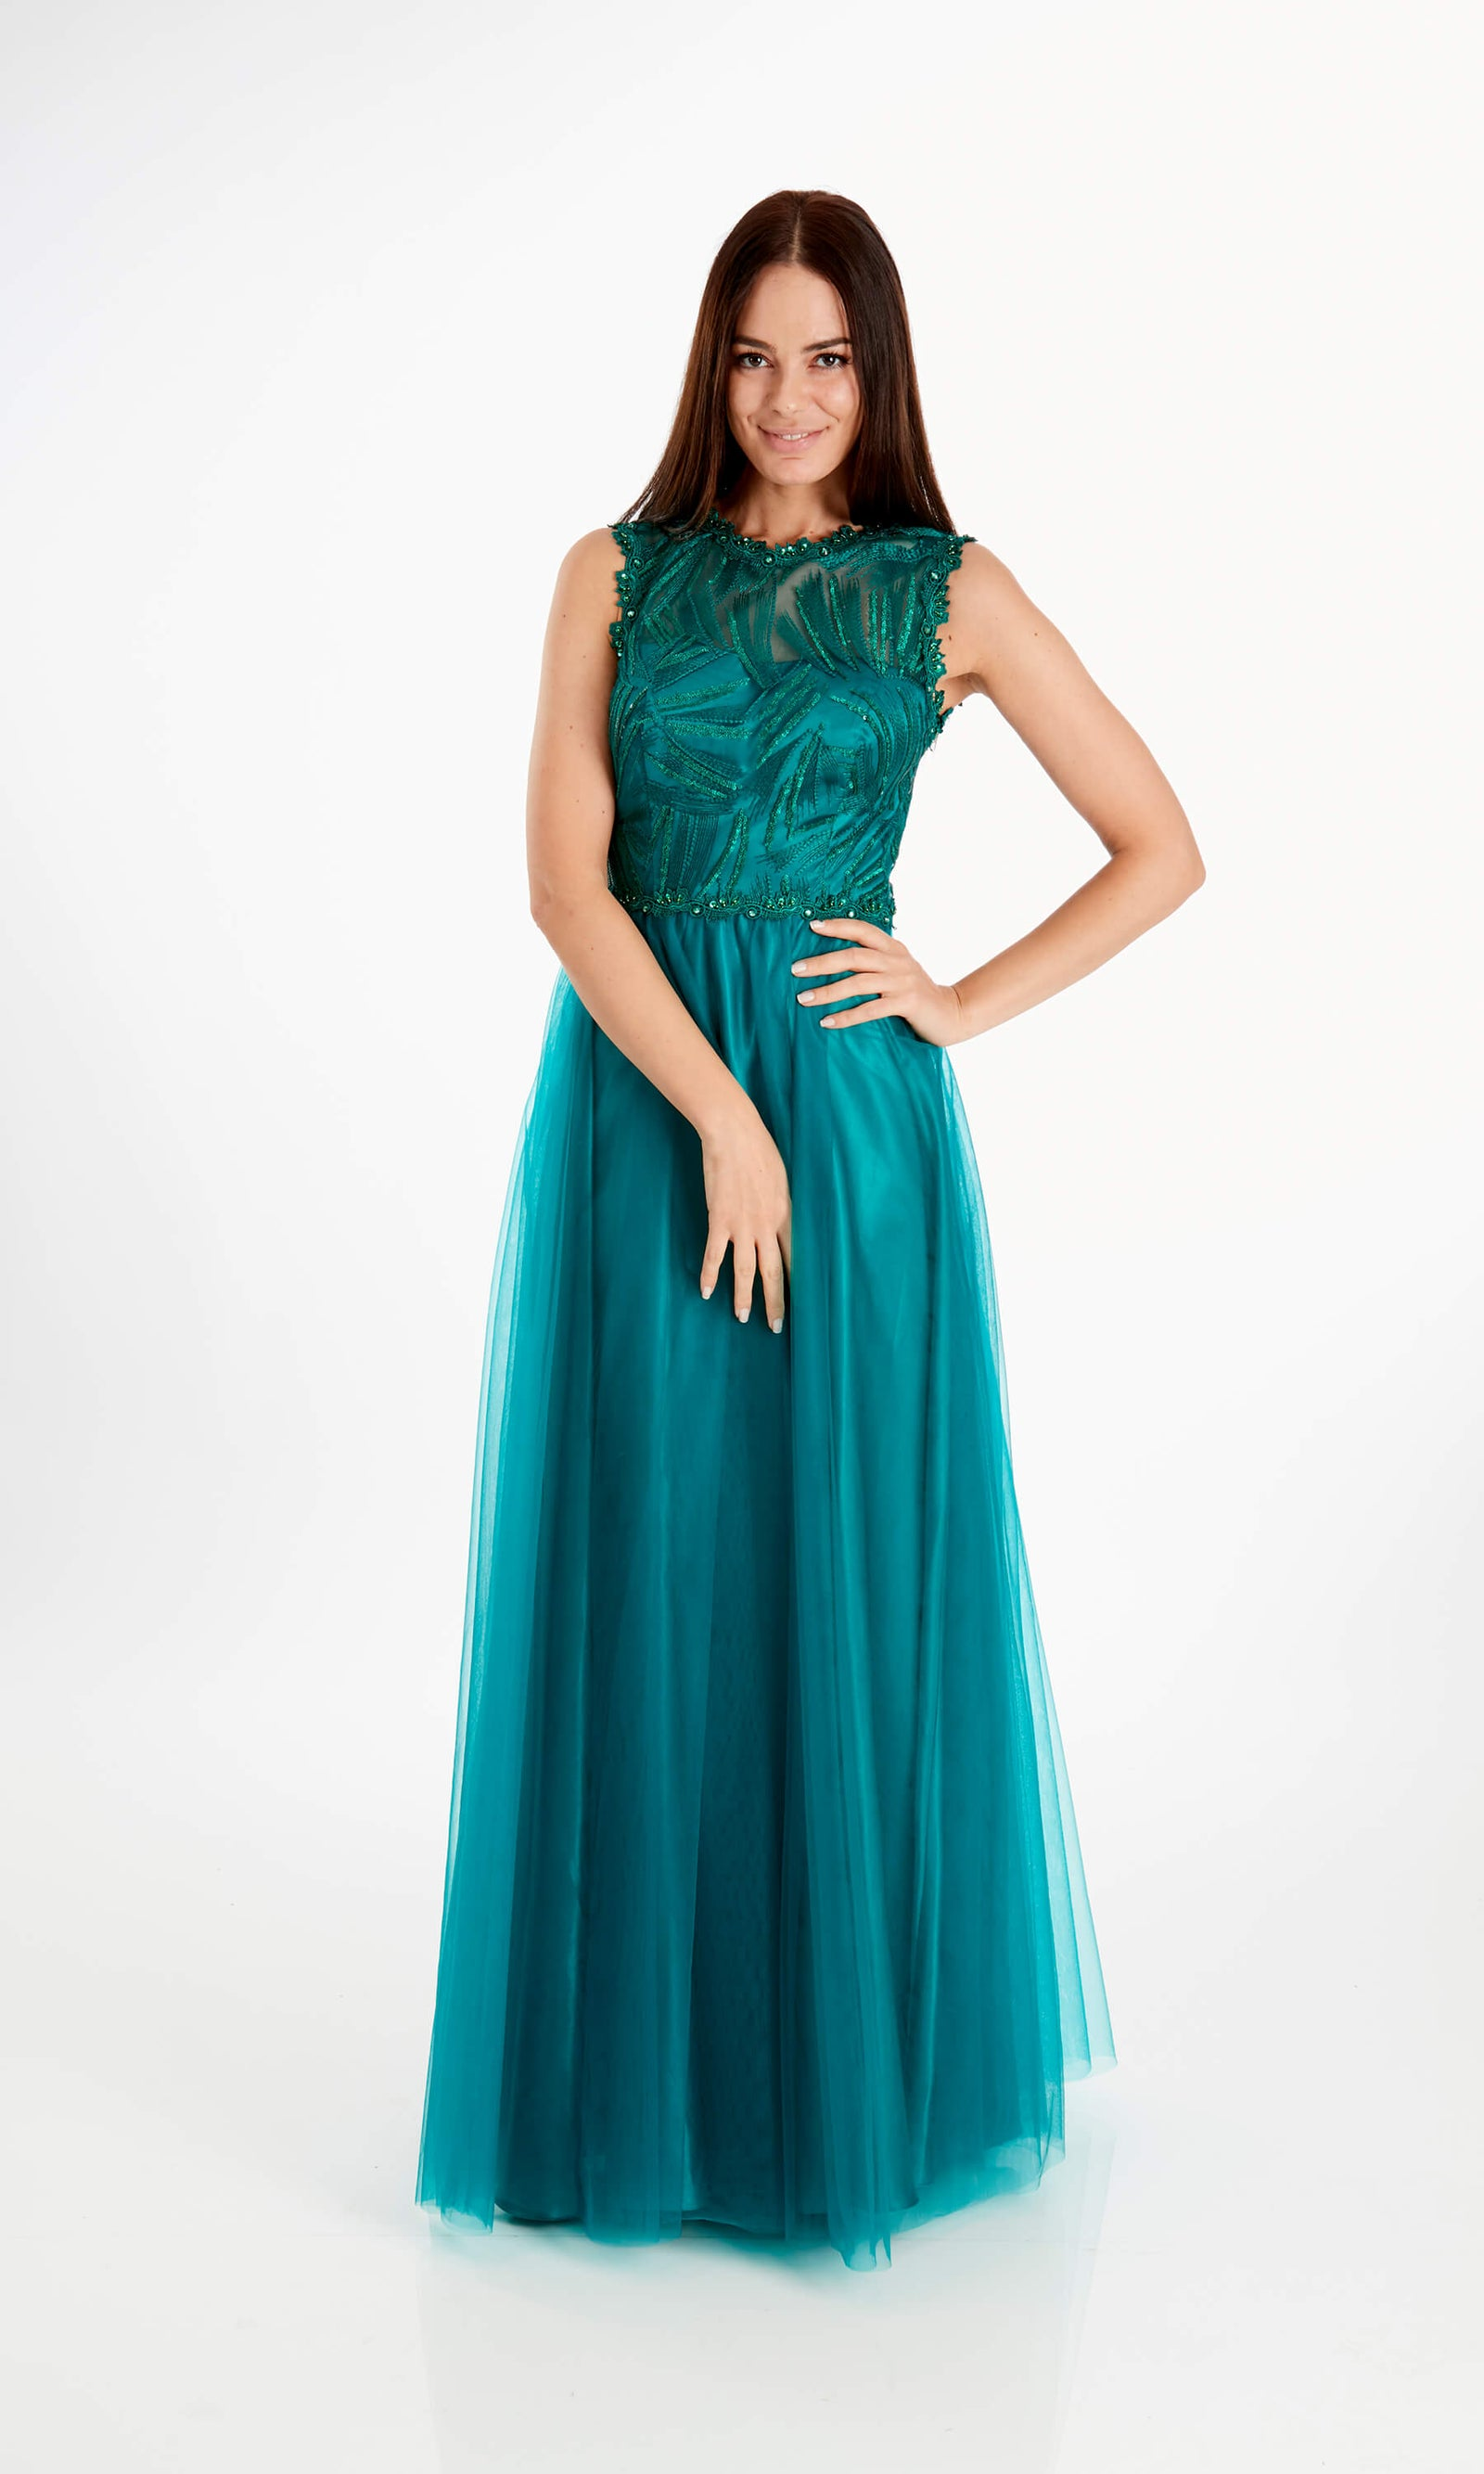 Violet Green Crystal Breeze Ballgown Evening Prom Dress